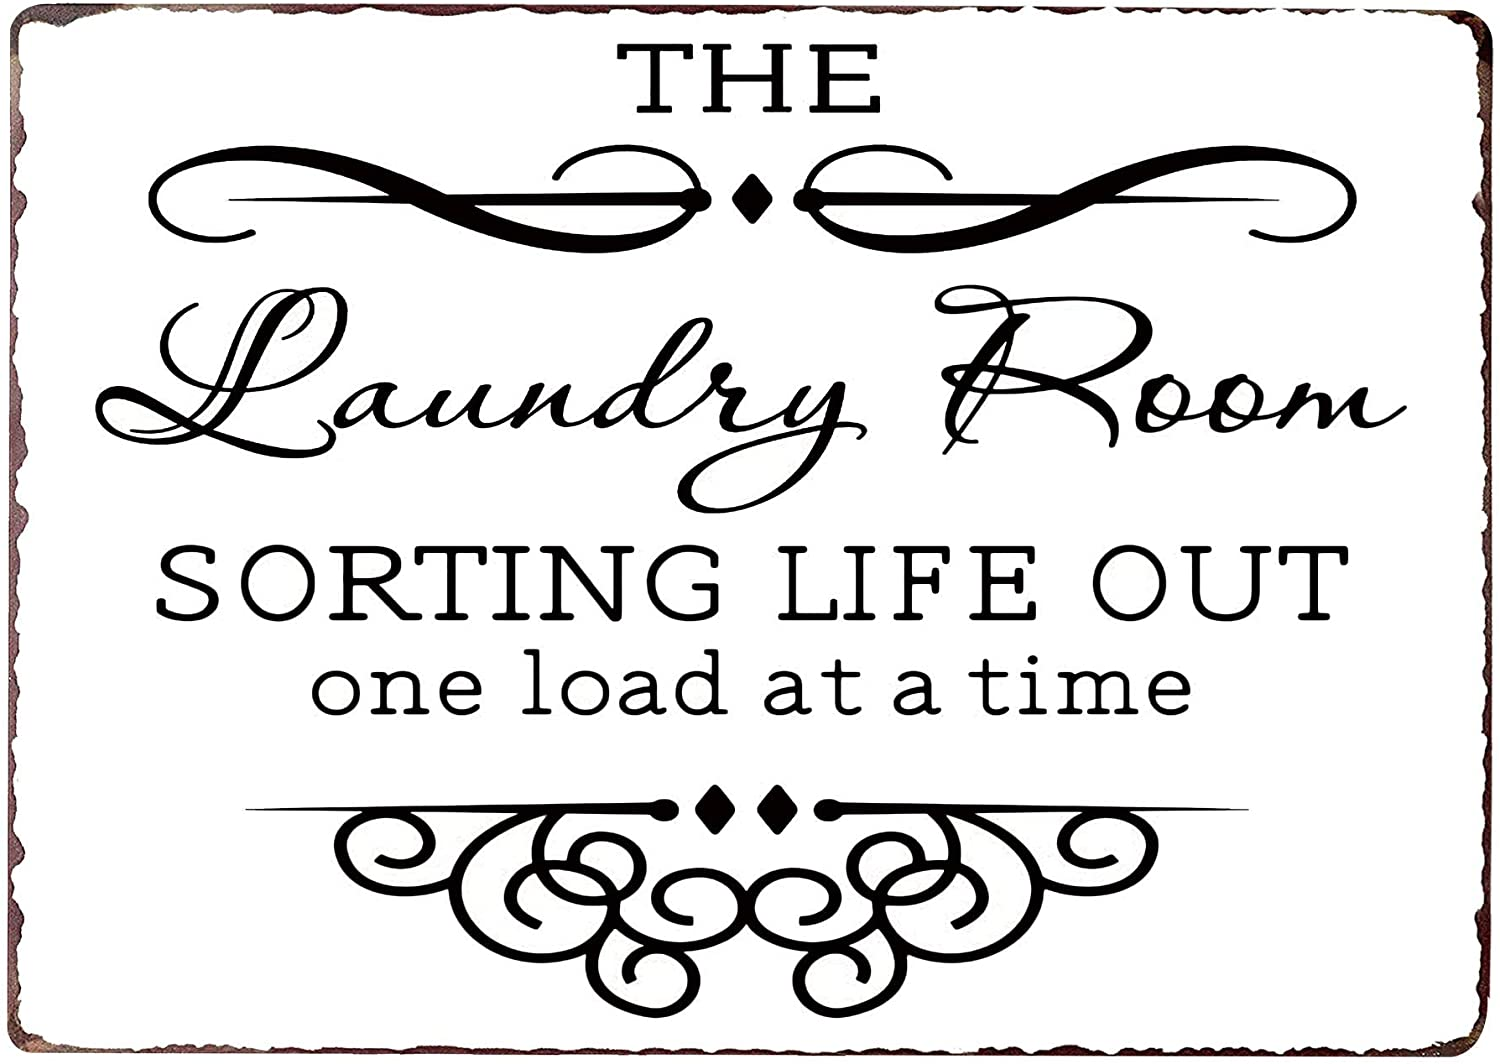 PXIYOU The Laundry Room Sorting Life Out One Load at a Time Vintage Metal Sign Home Bathroom Wash Room Signs Country Home Decor 8X12Inch